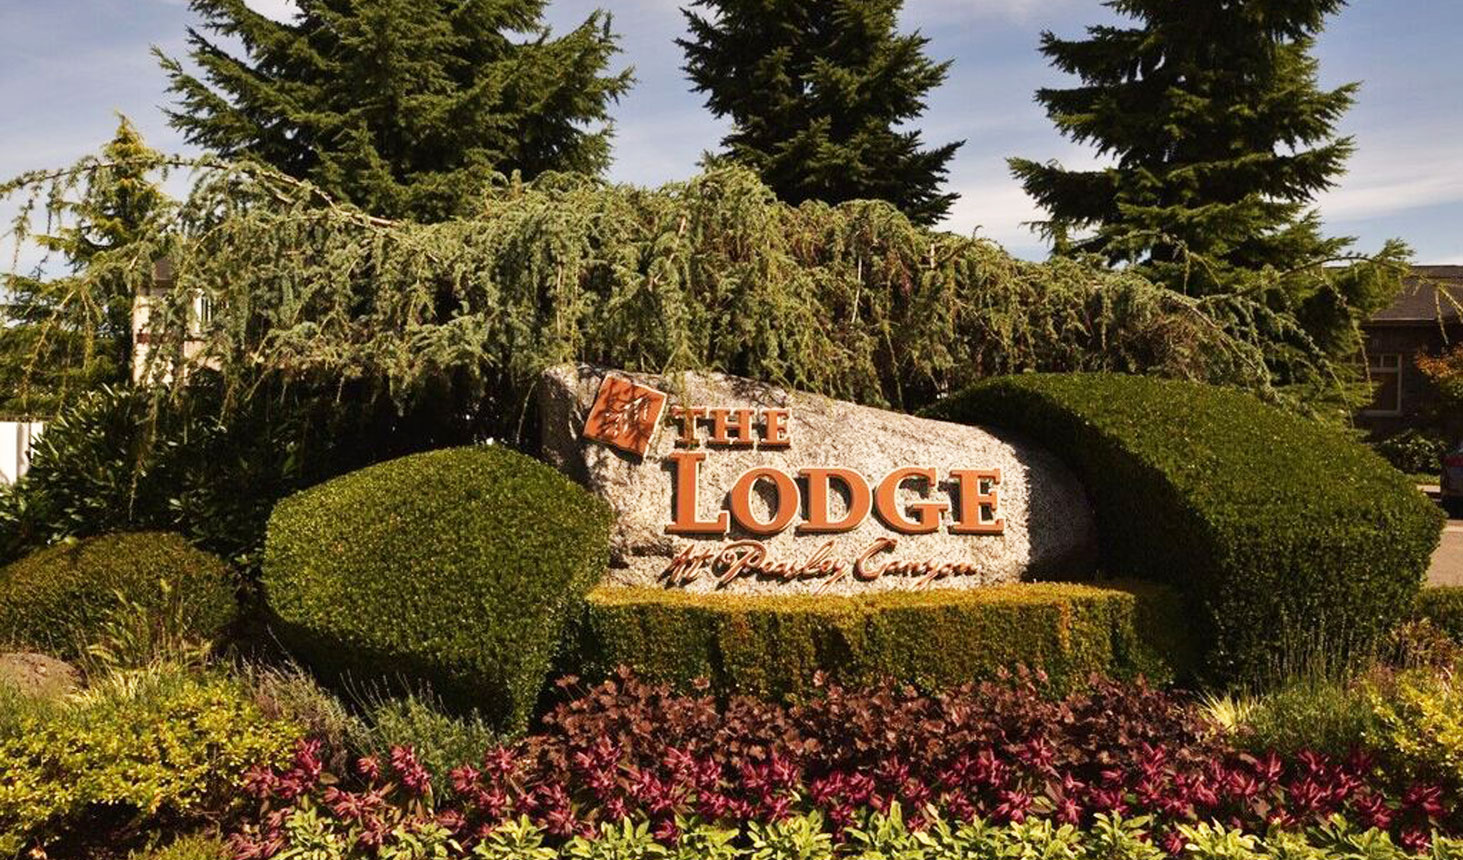 Lodge at Peasley - Avanath Capital Management, LLC.